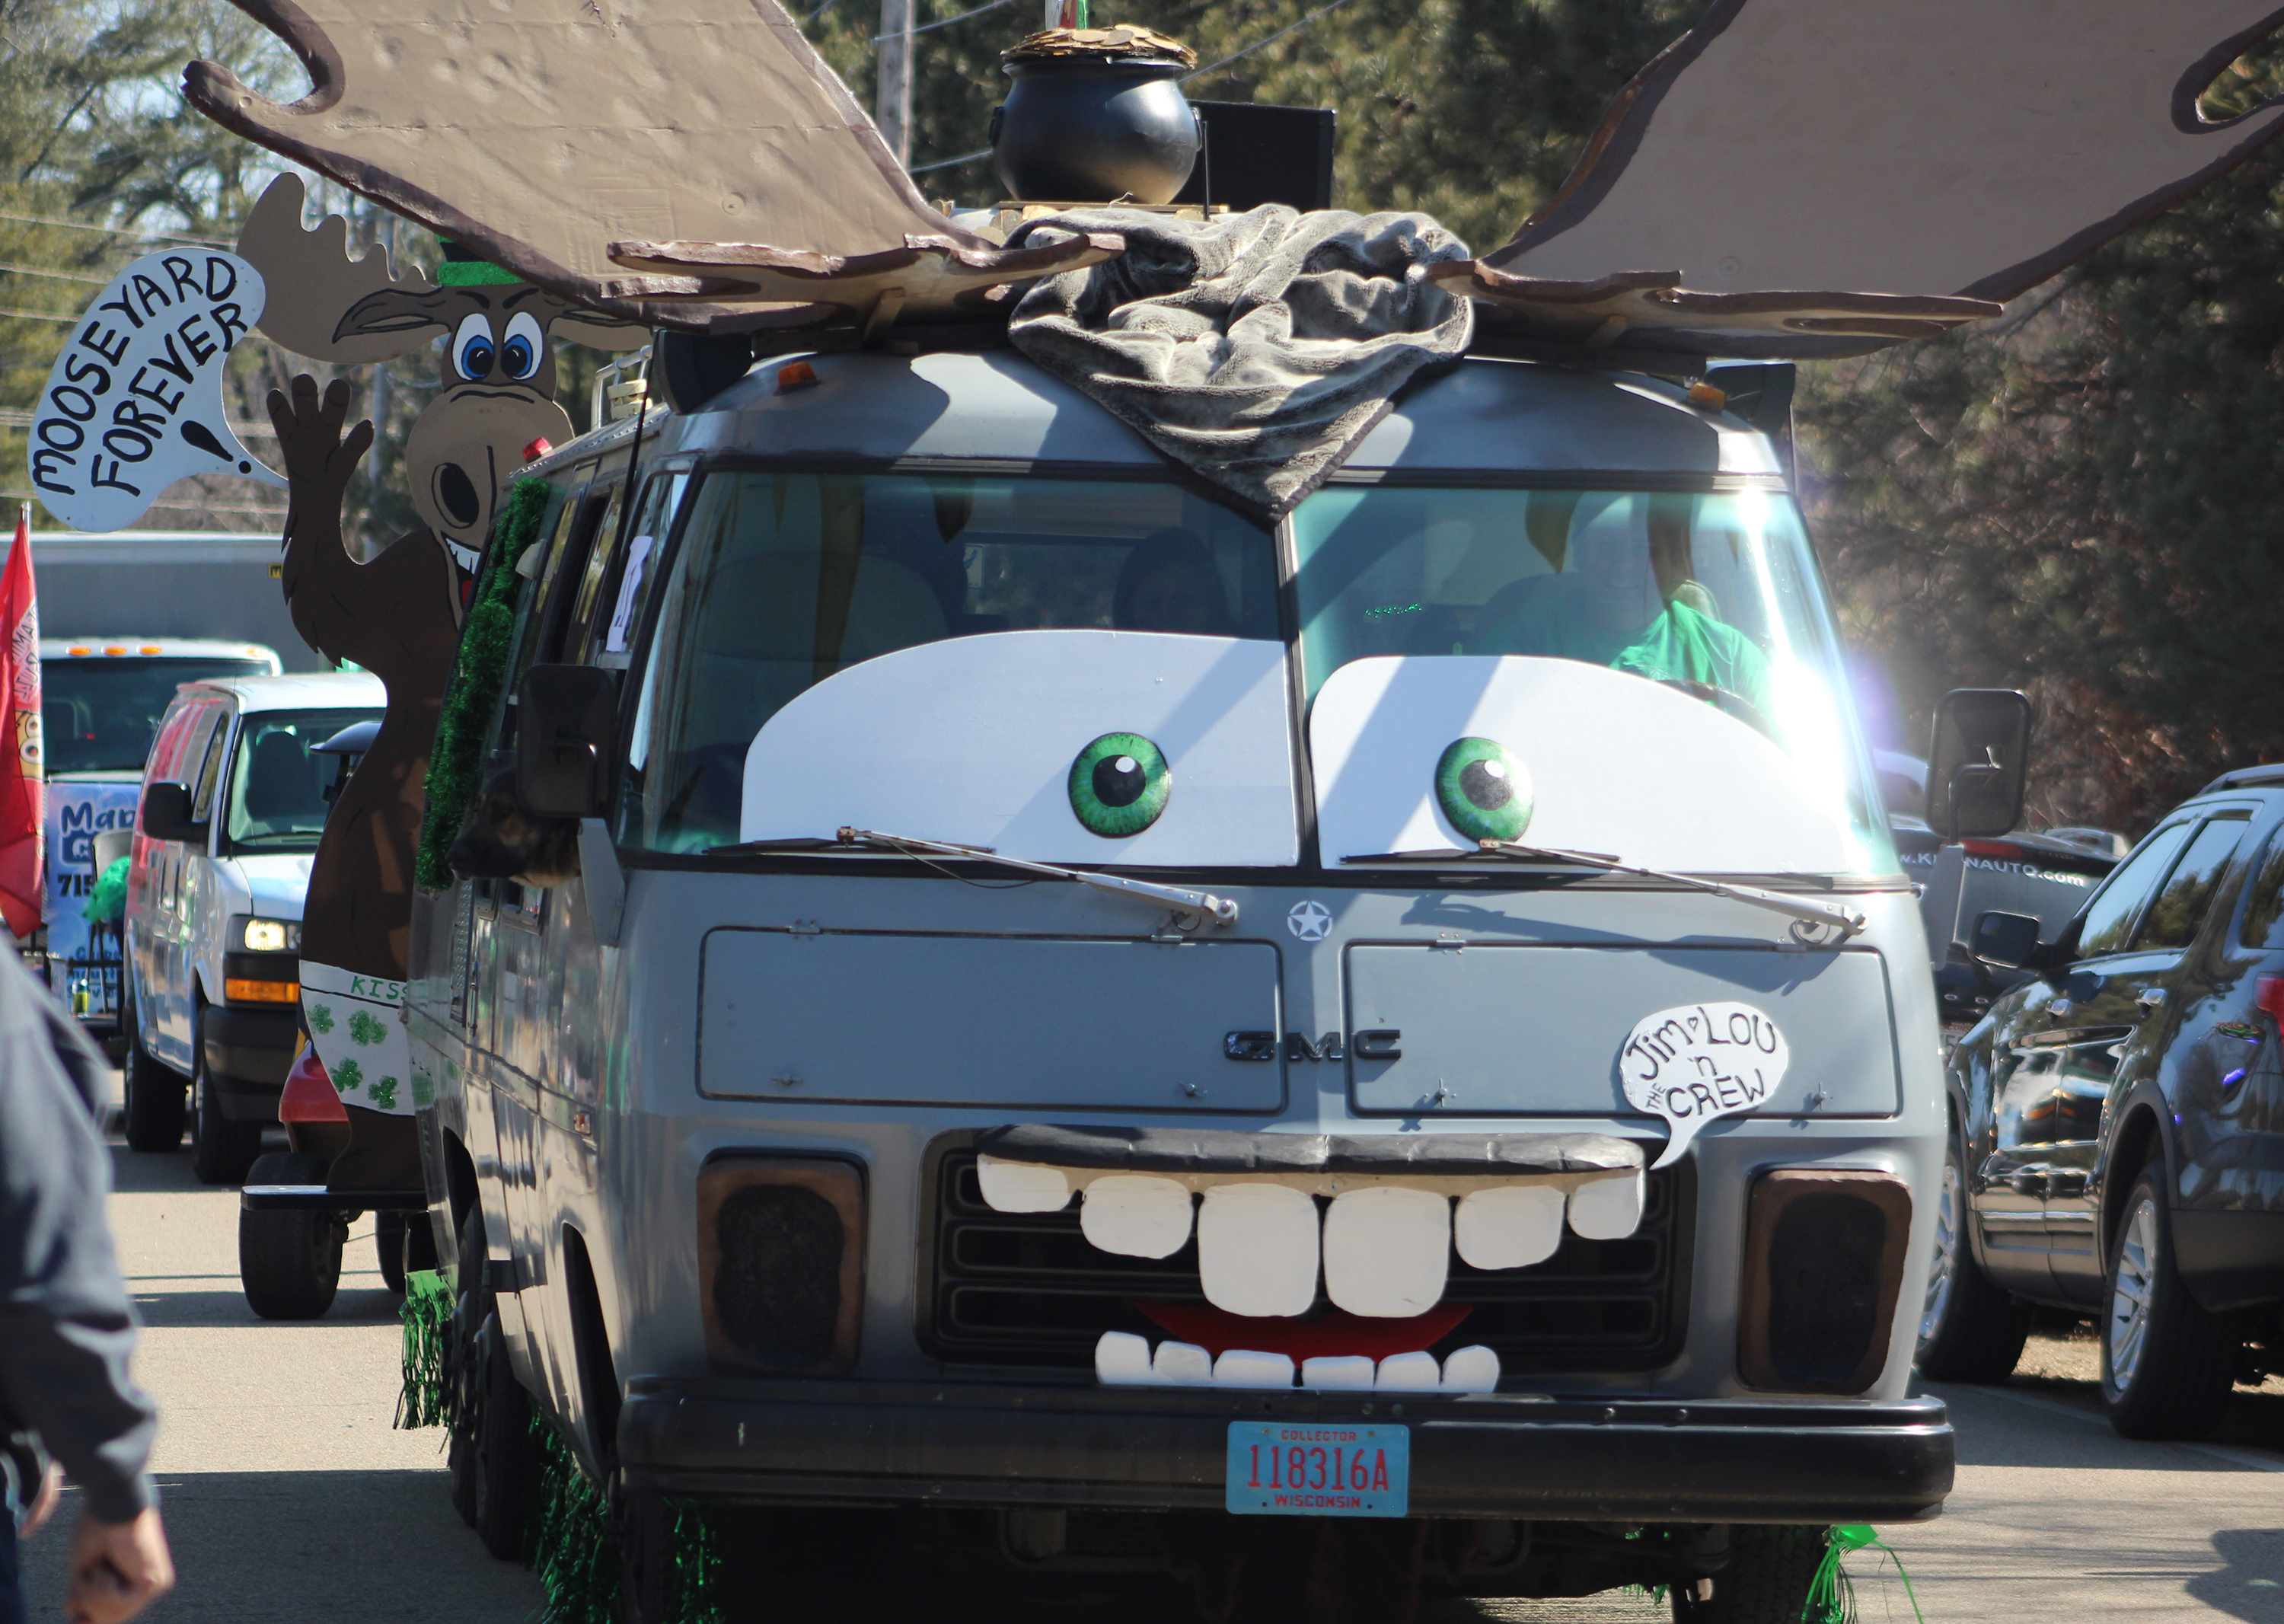 The Mooseyard is a beloved segment of the Town of Wescott. Some parade entries — like this vehicle from Classic's Restaurant and Lounge — minimized the green and focused on the moose part of the event.(Lee Pulaski | NEW Media)